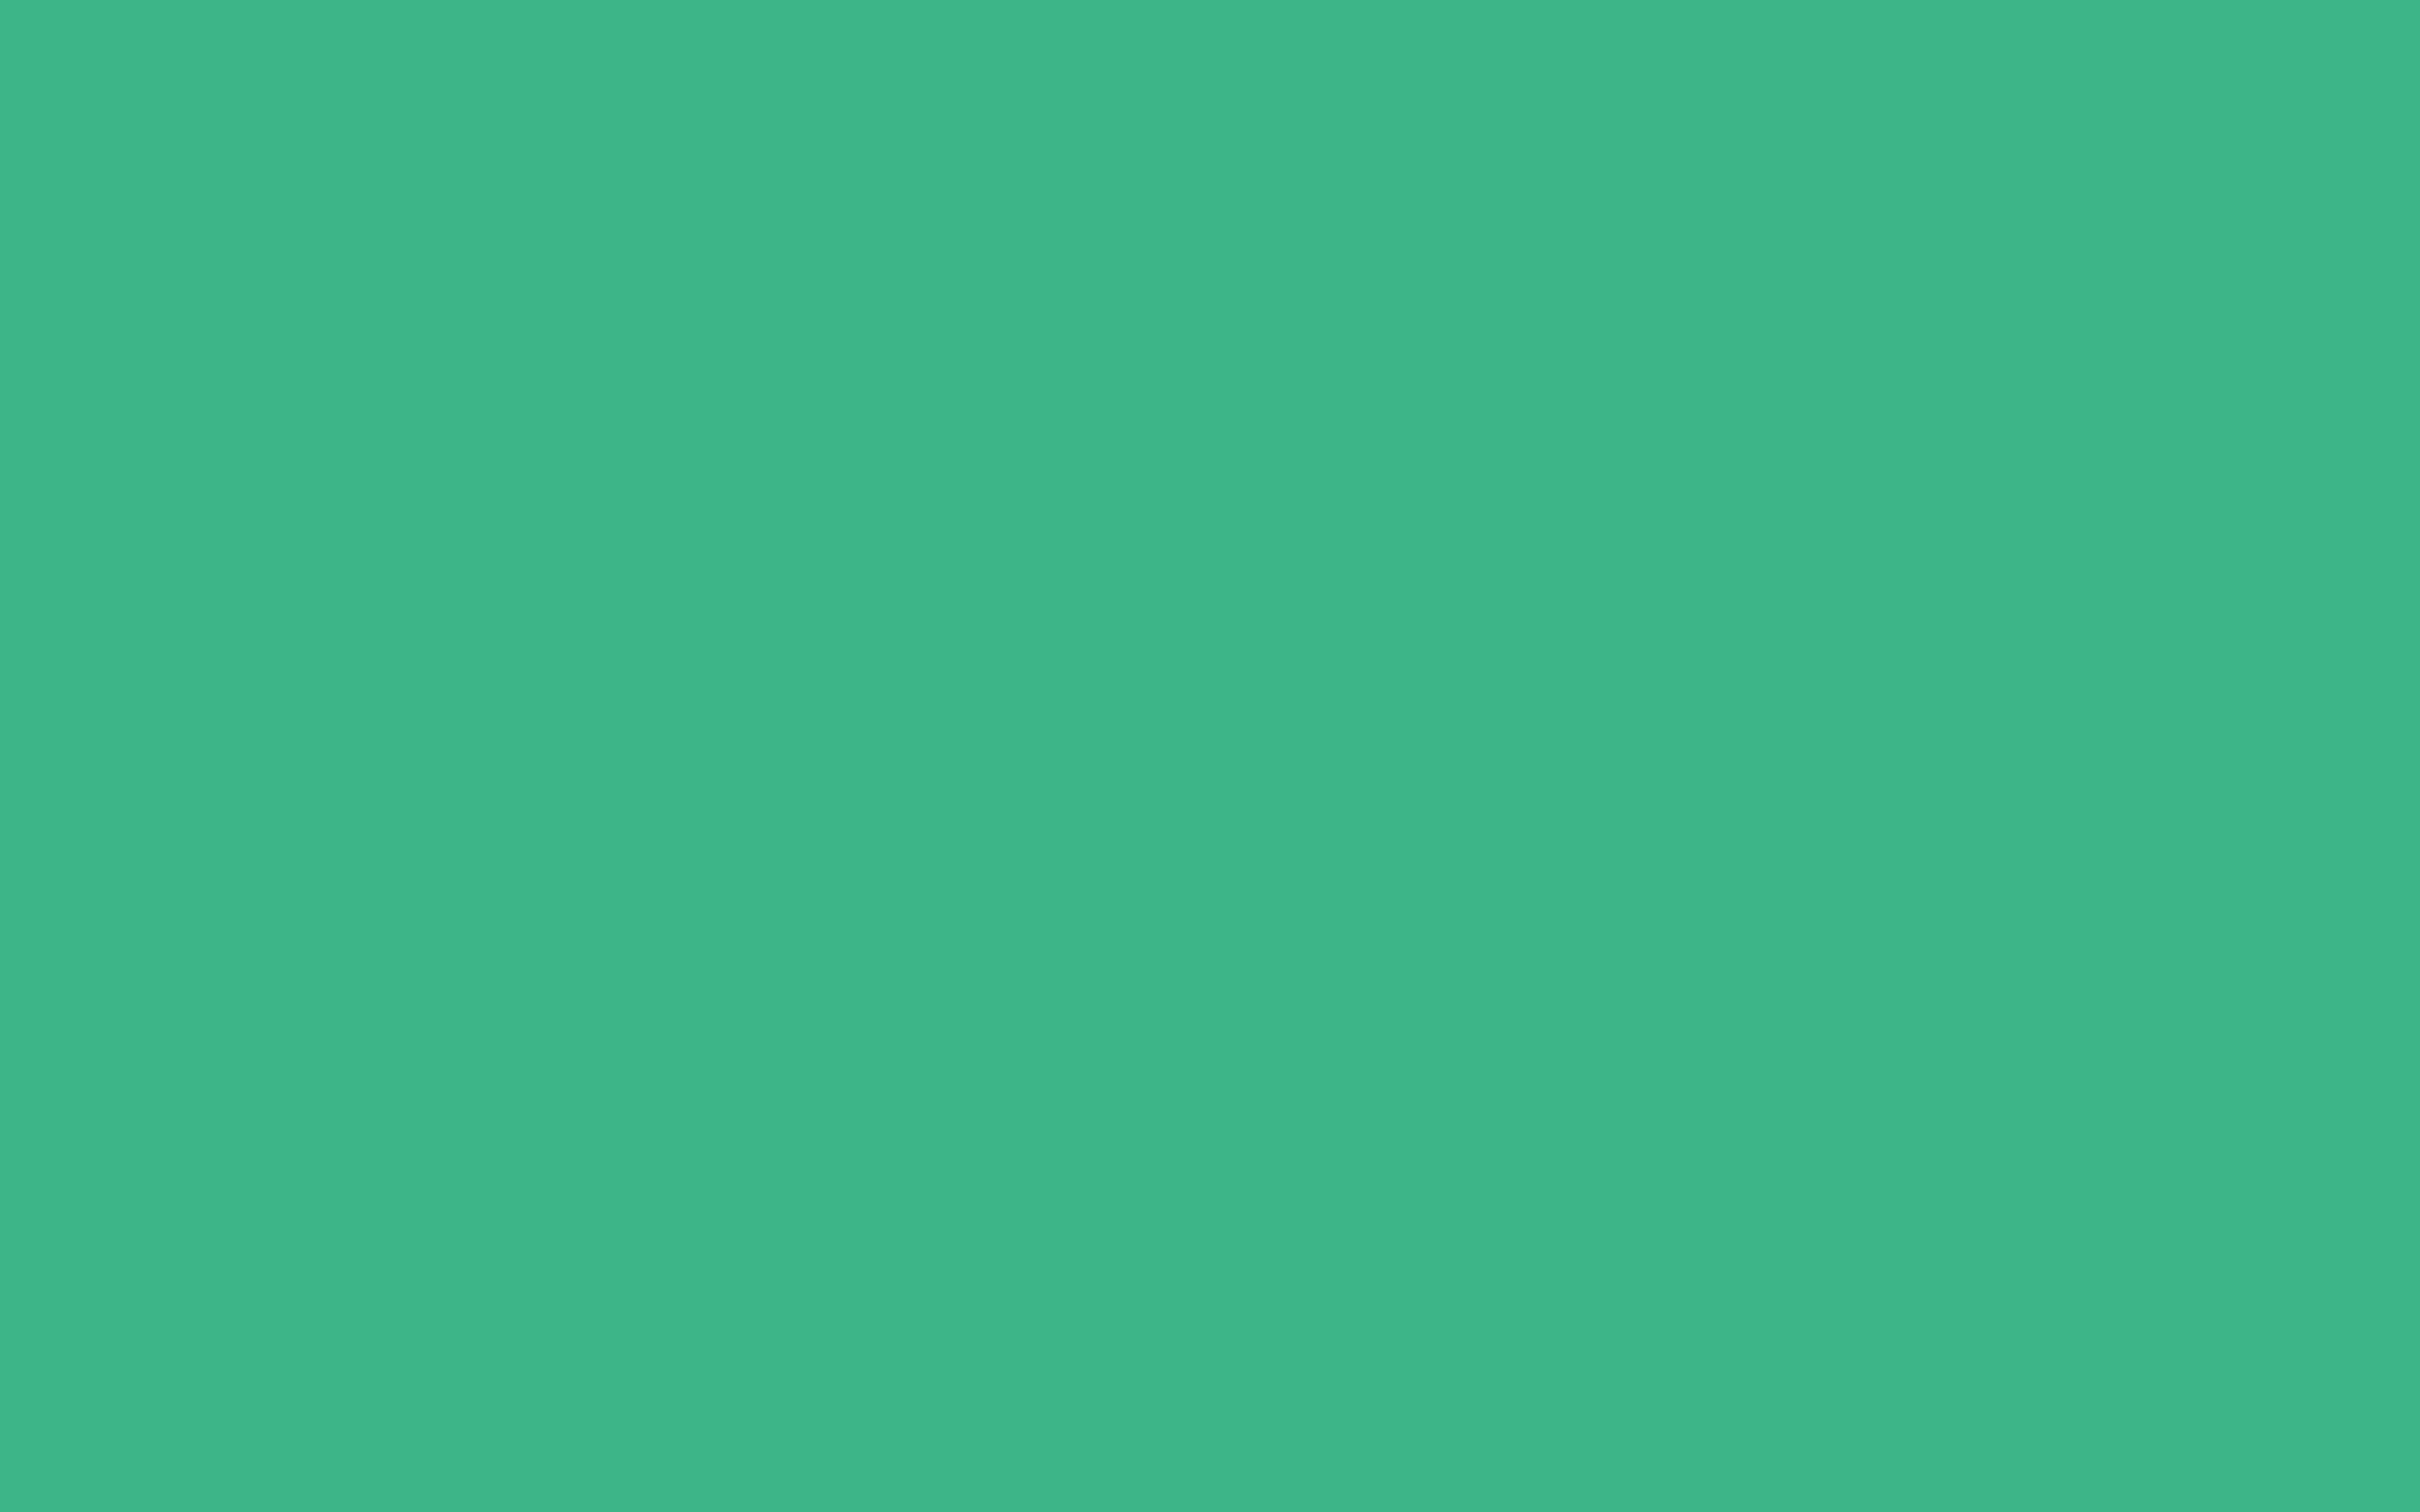 2560x1600 Mint Solid Color Background